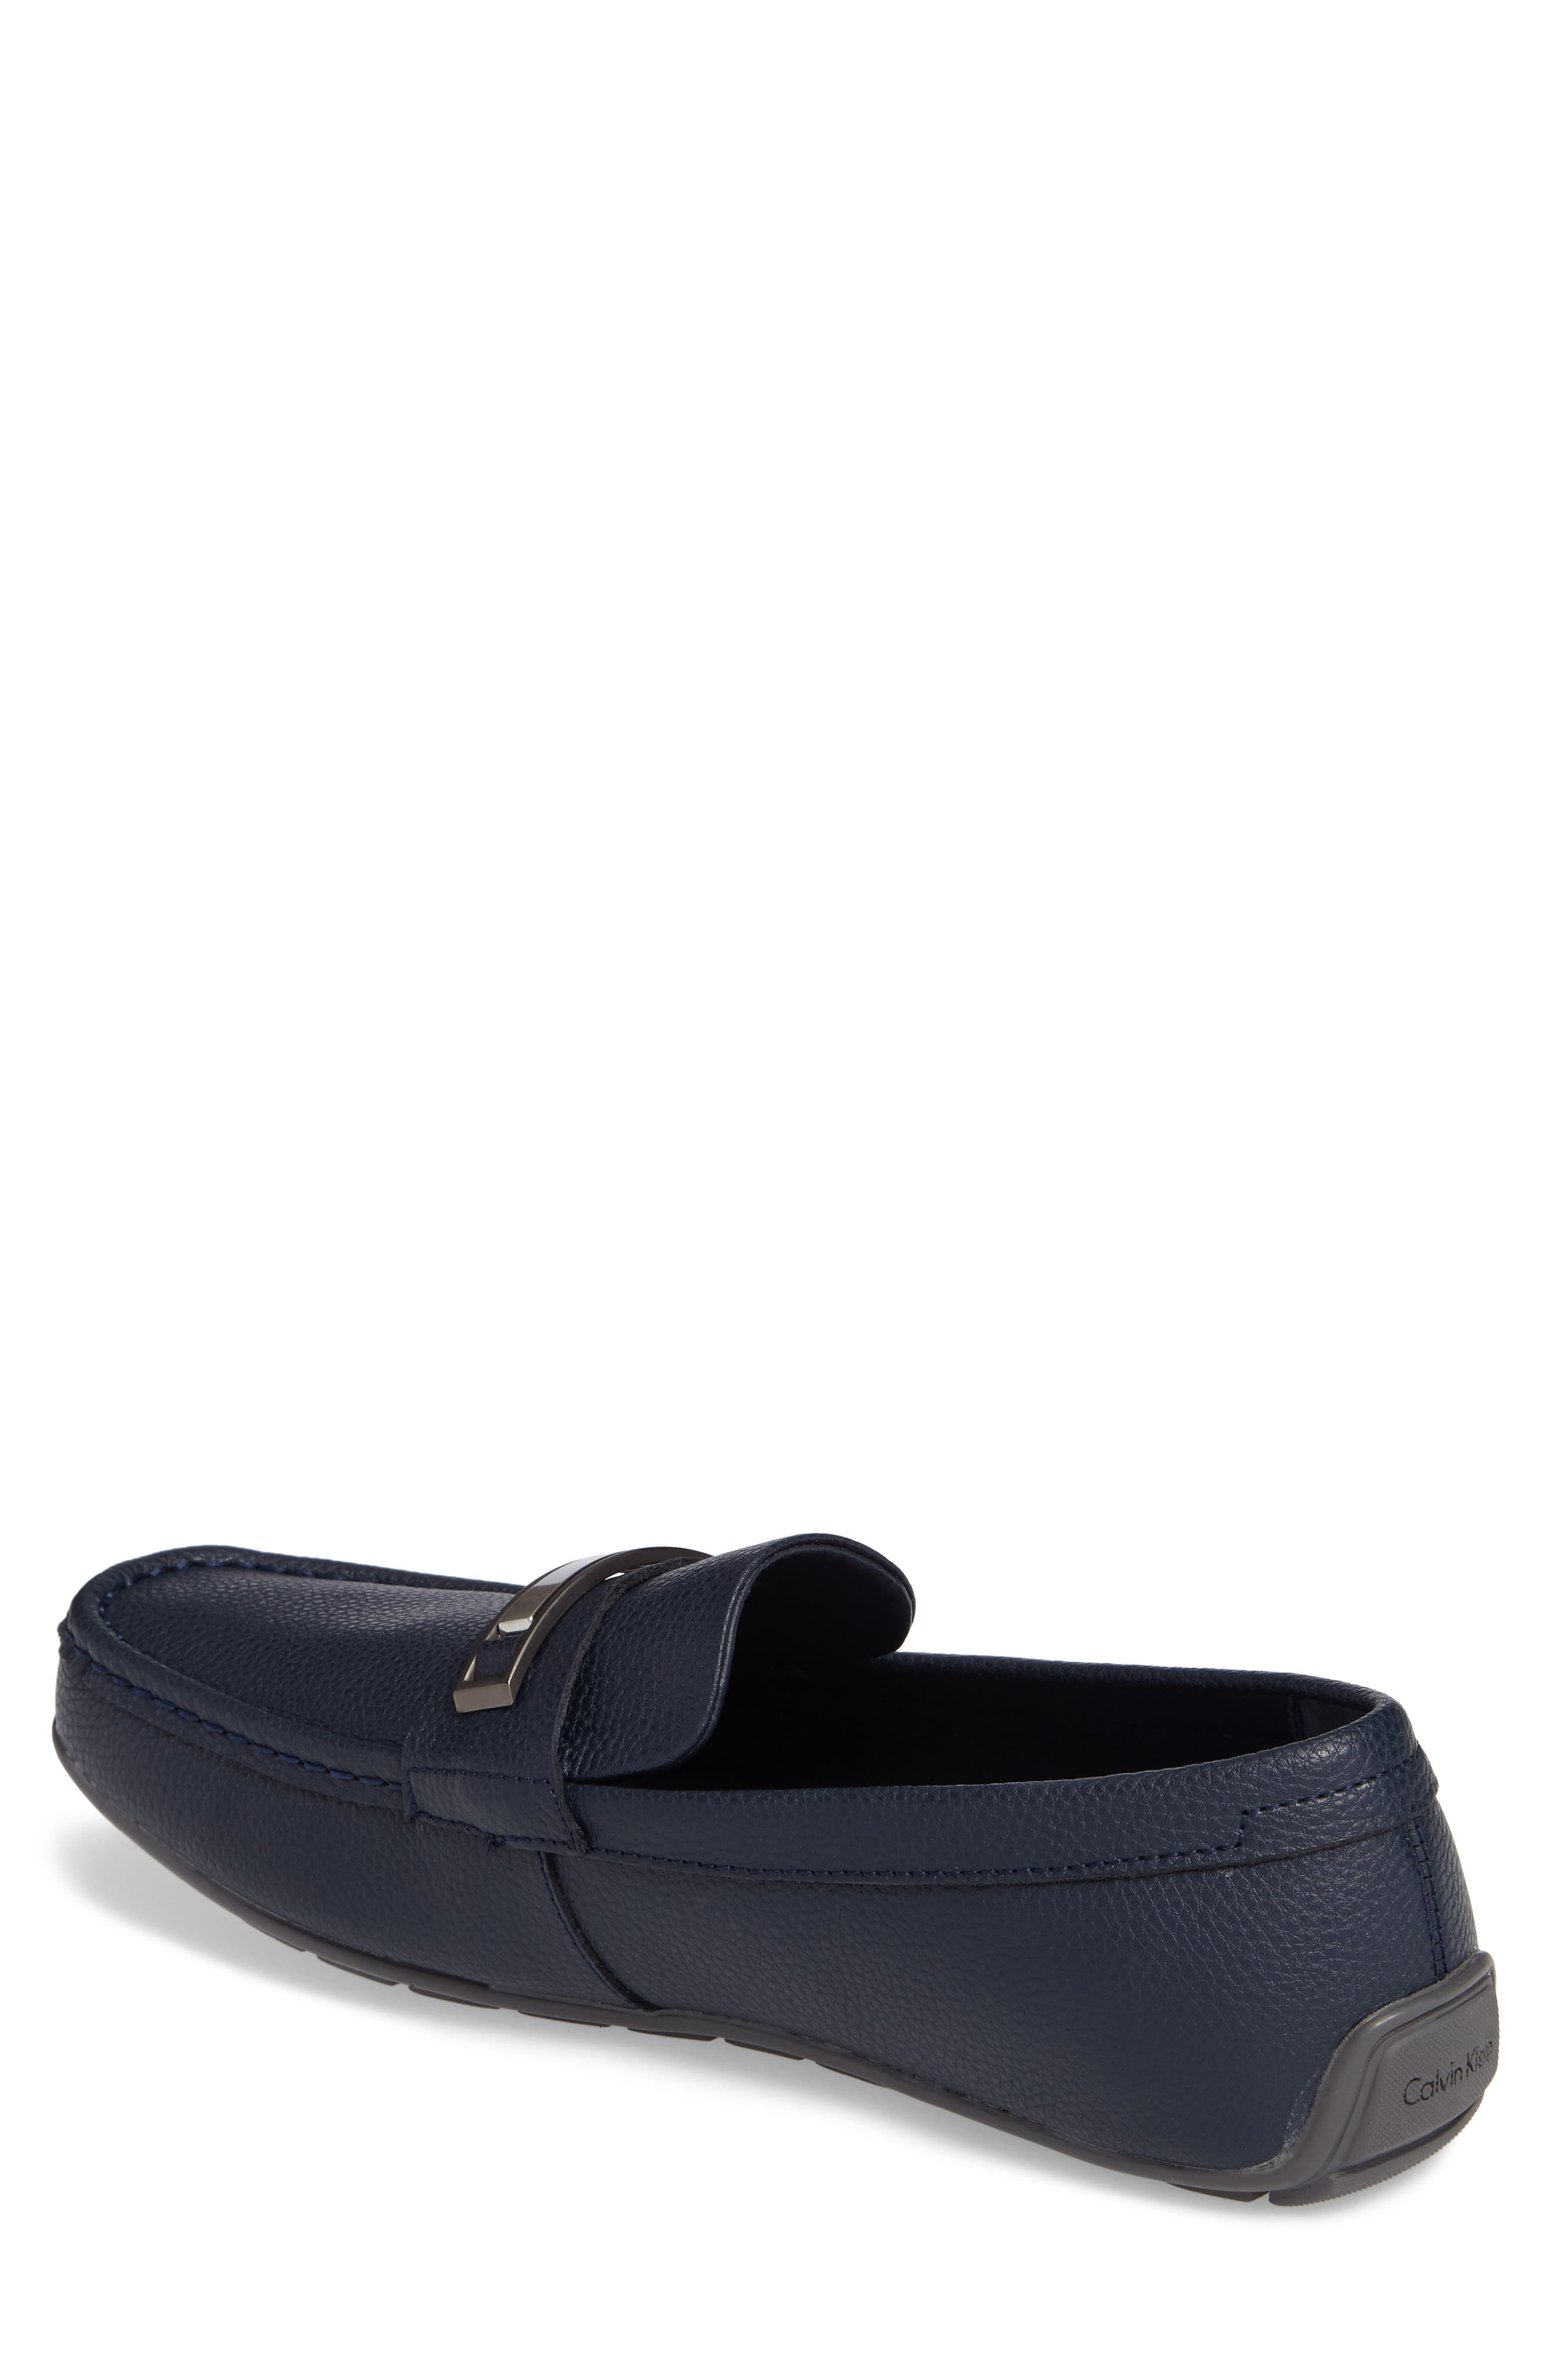 Irving Driving Loafer,                             Alternate thumbnail 8, color,